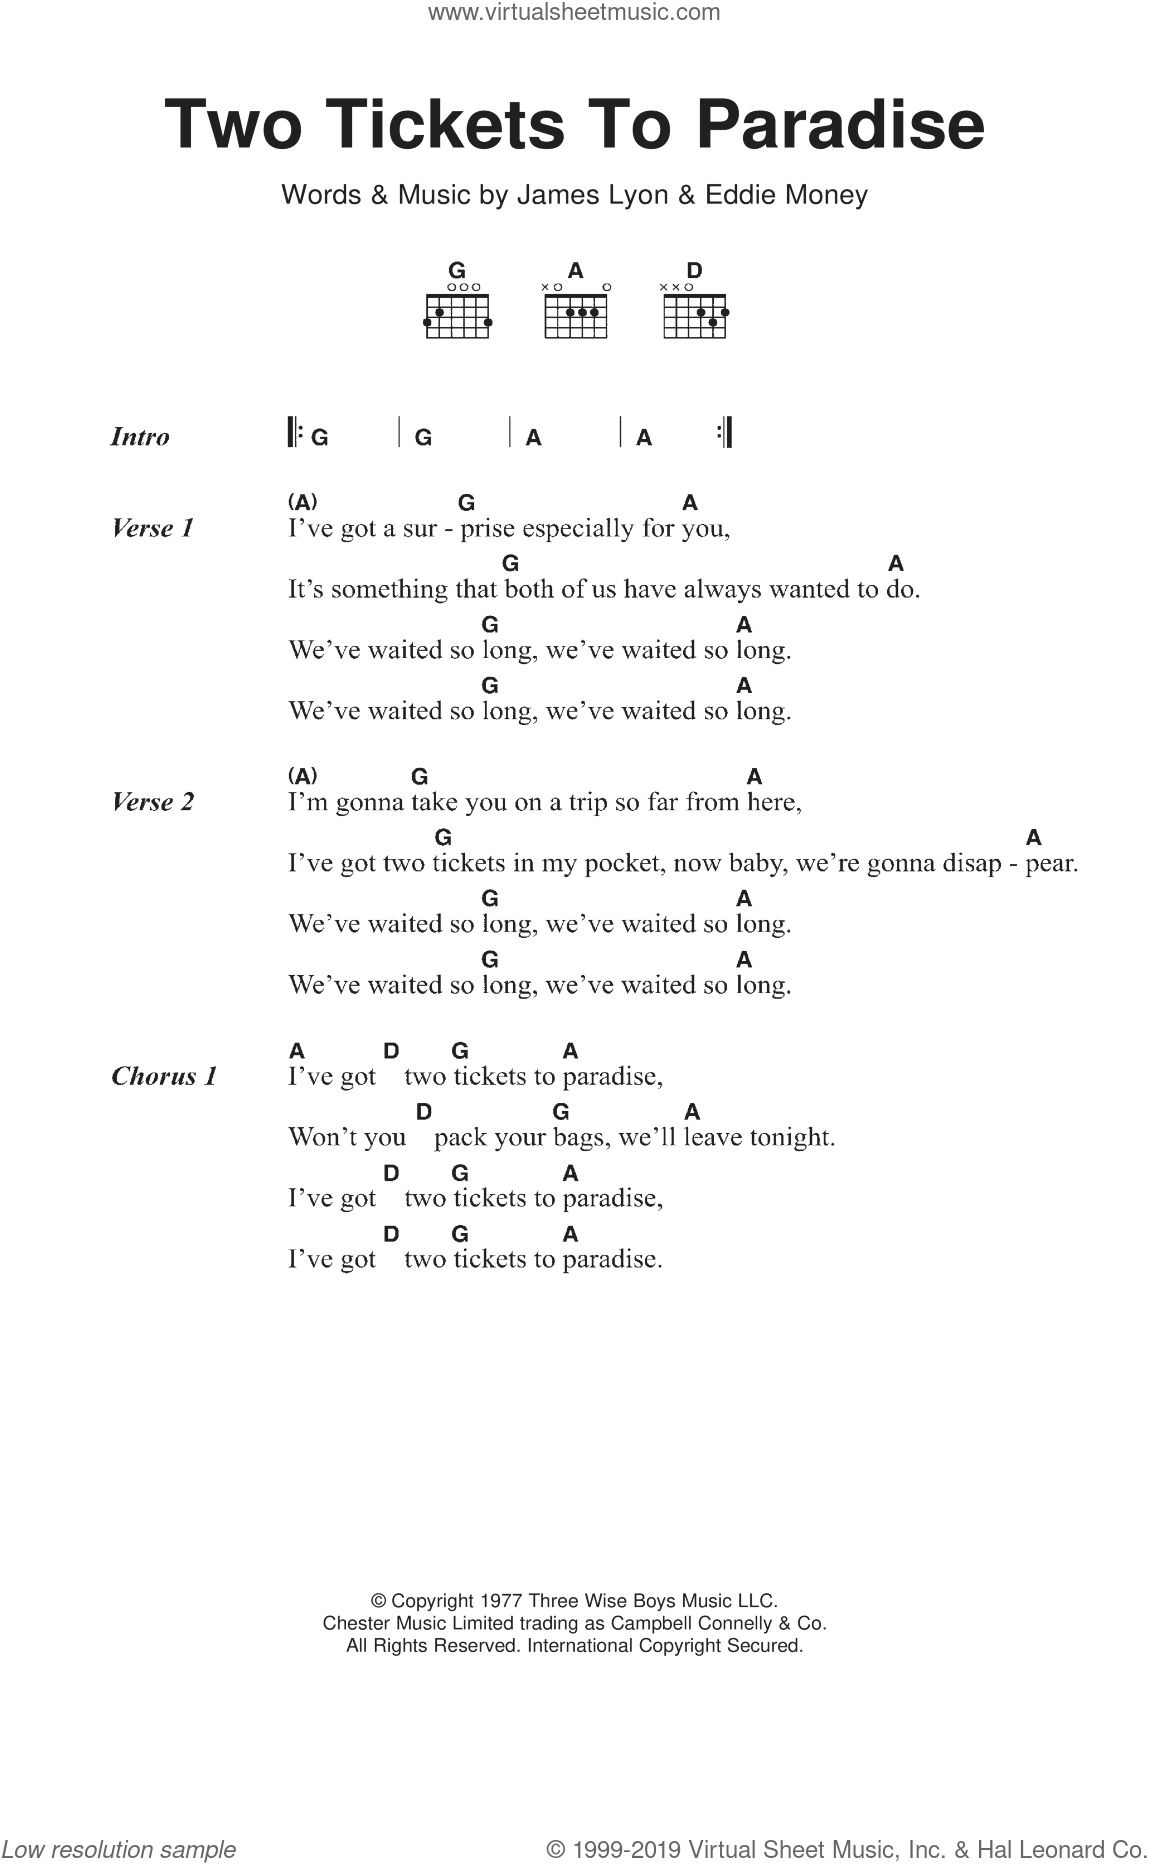 Two Tickets To Paradise sheet music for guitar (chords) by Eddie Money and James Lyon, intermediate